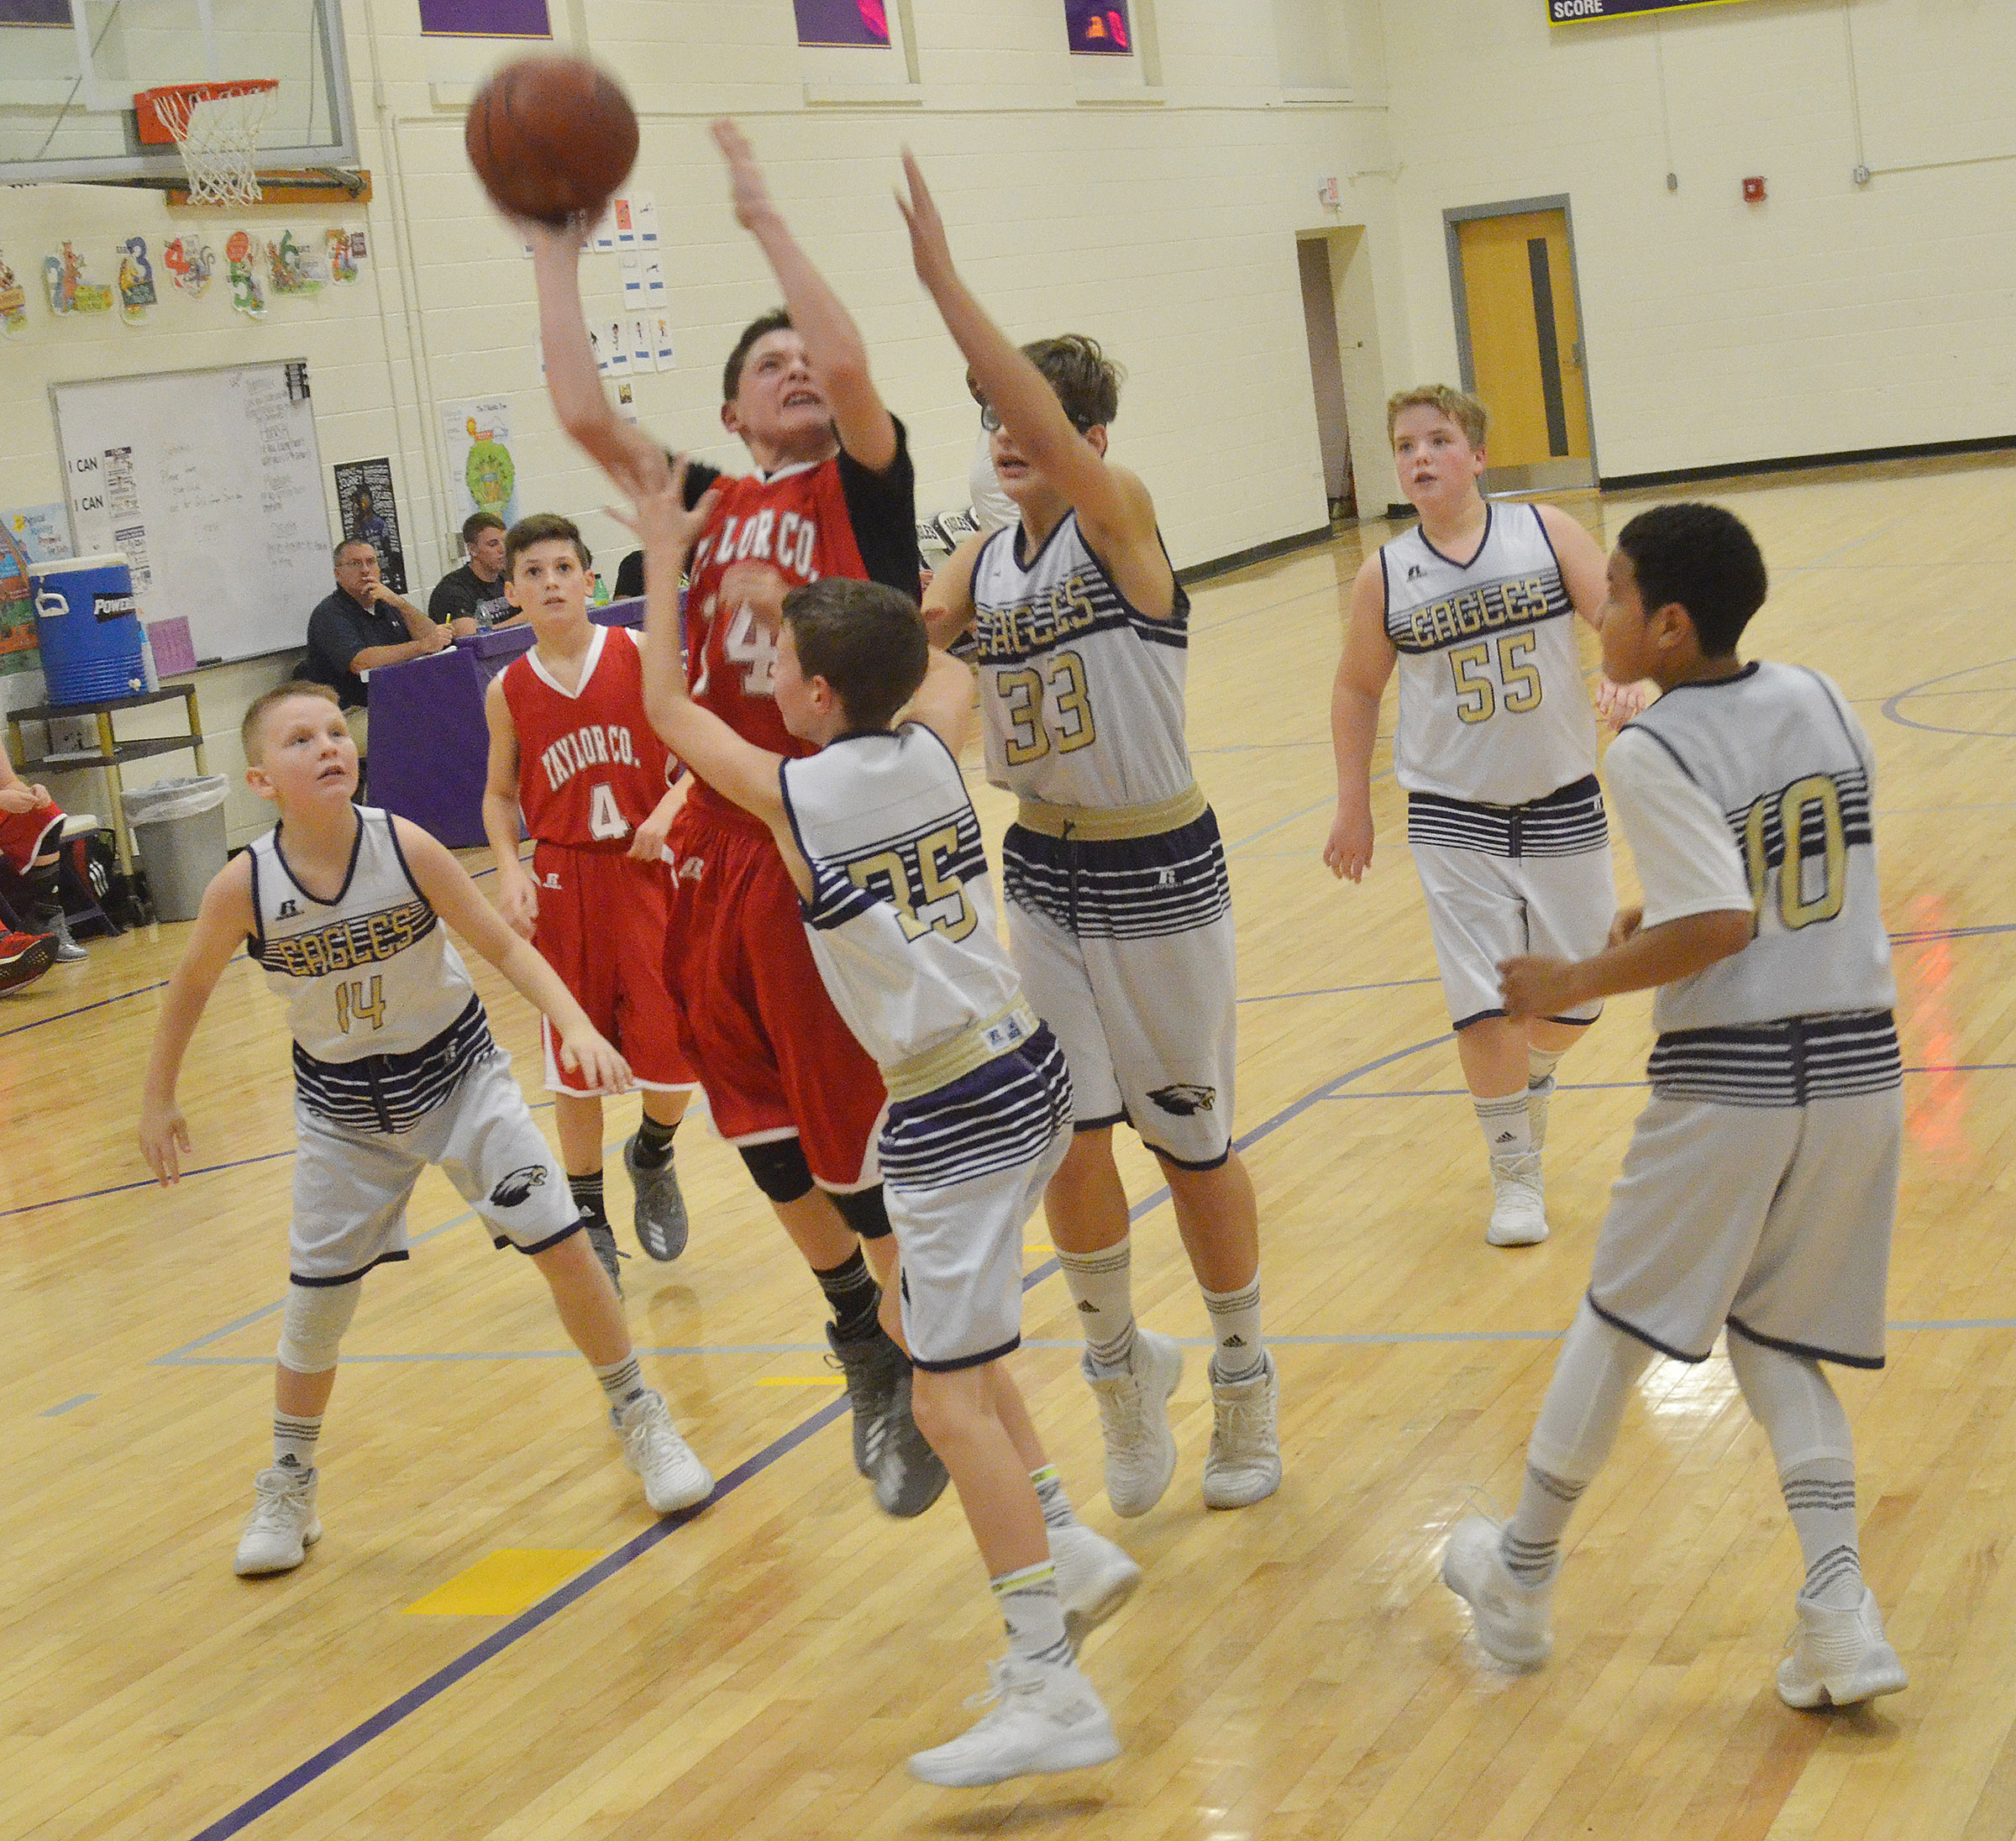 CMS boys' basketball players attempt to block a shot.